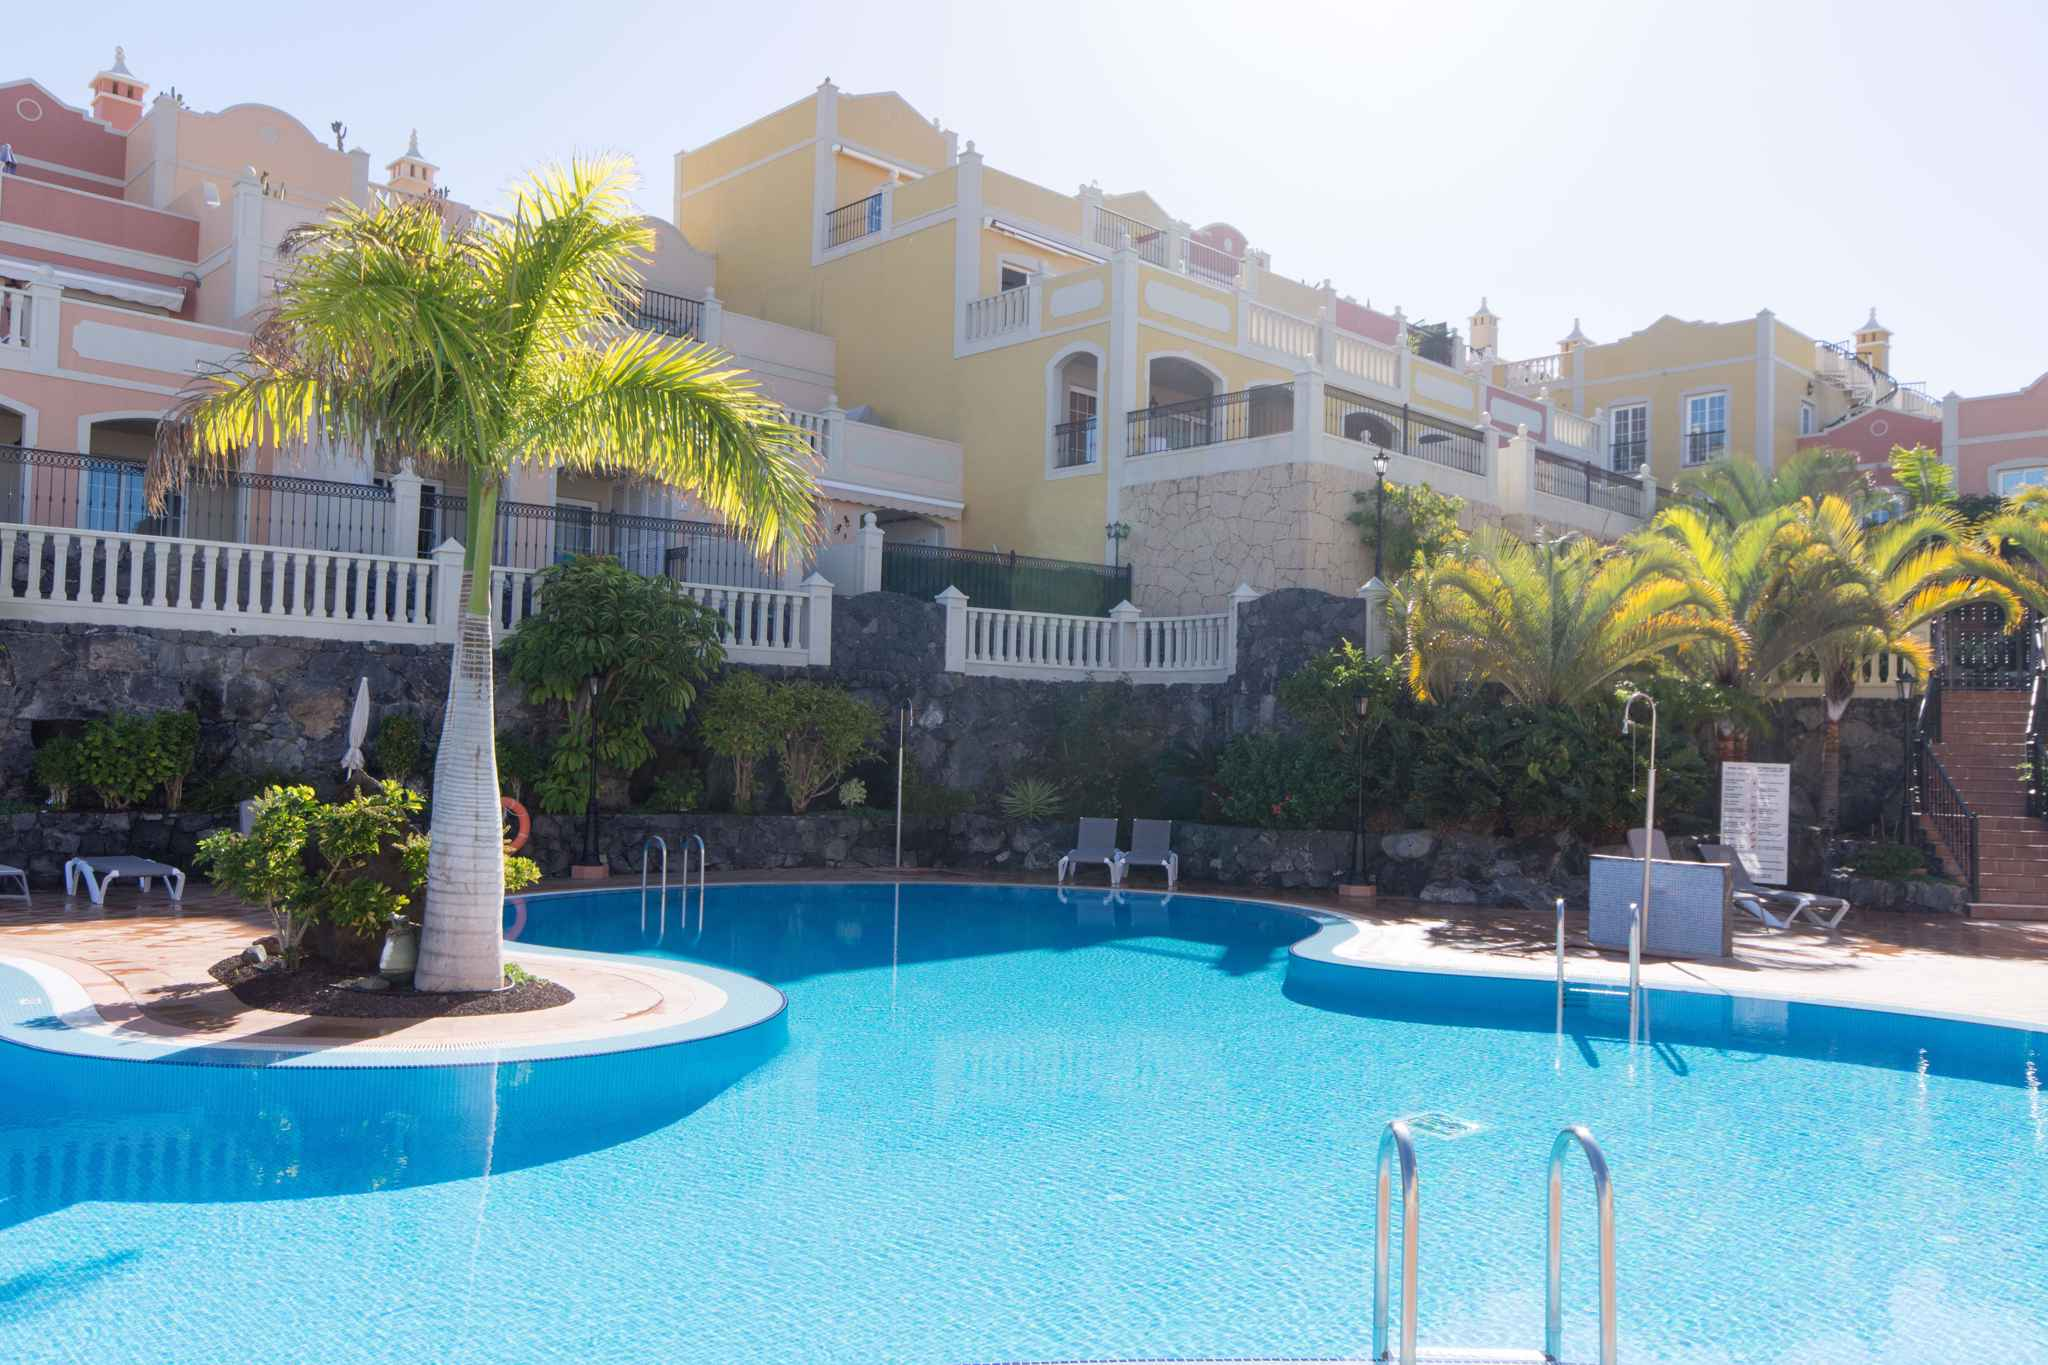 Holiday apartment mit Pool in Ferienanlage (2377552), Palm-Mar, Tenerife, Canary Islands, Spain, picture 9